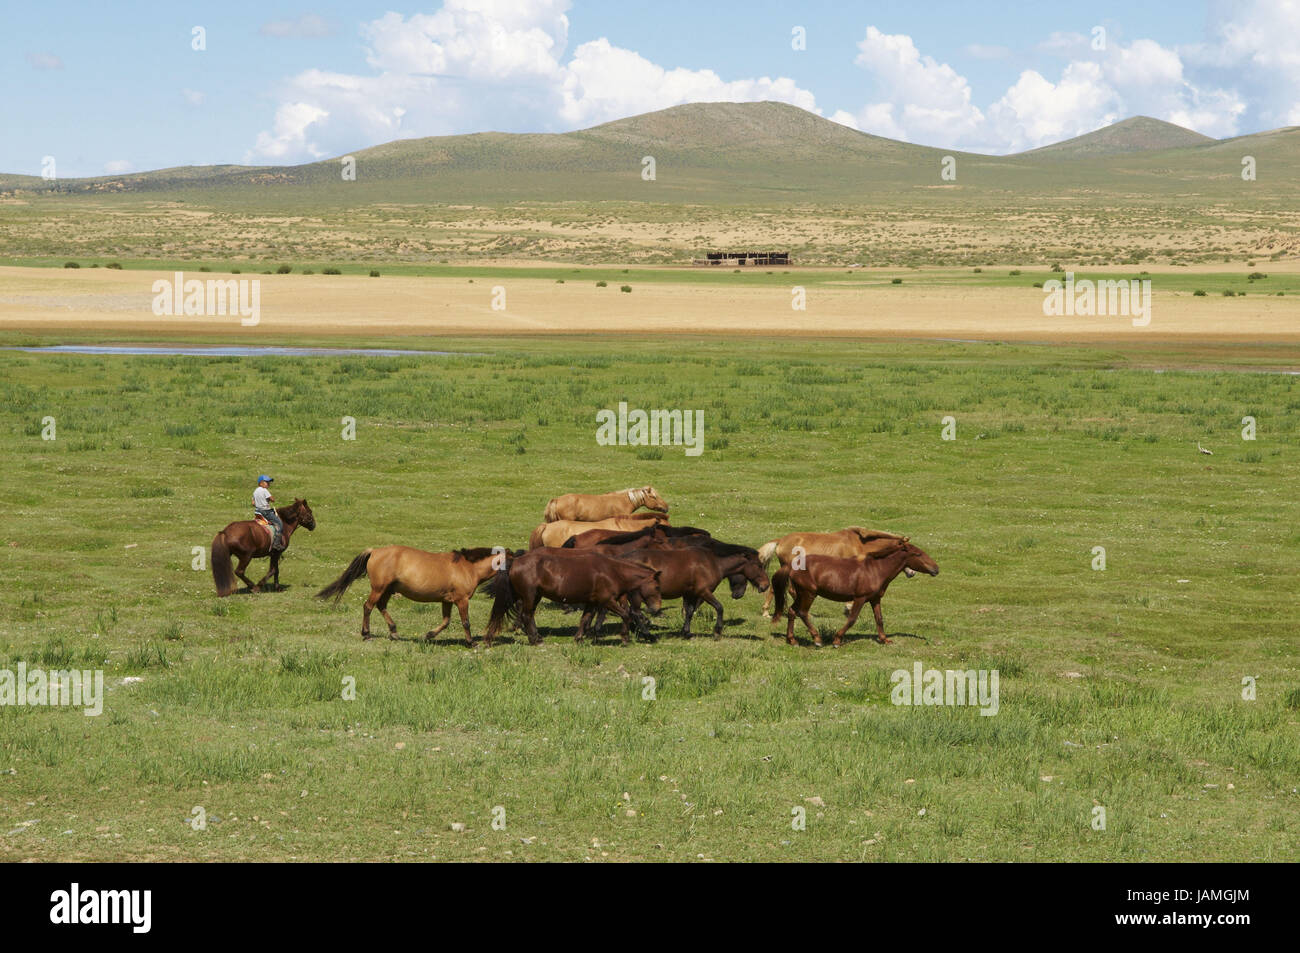 Mongolia,Central Asia,Ovorkhangai province,bleed with his horses in the steppe, Stock Photo